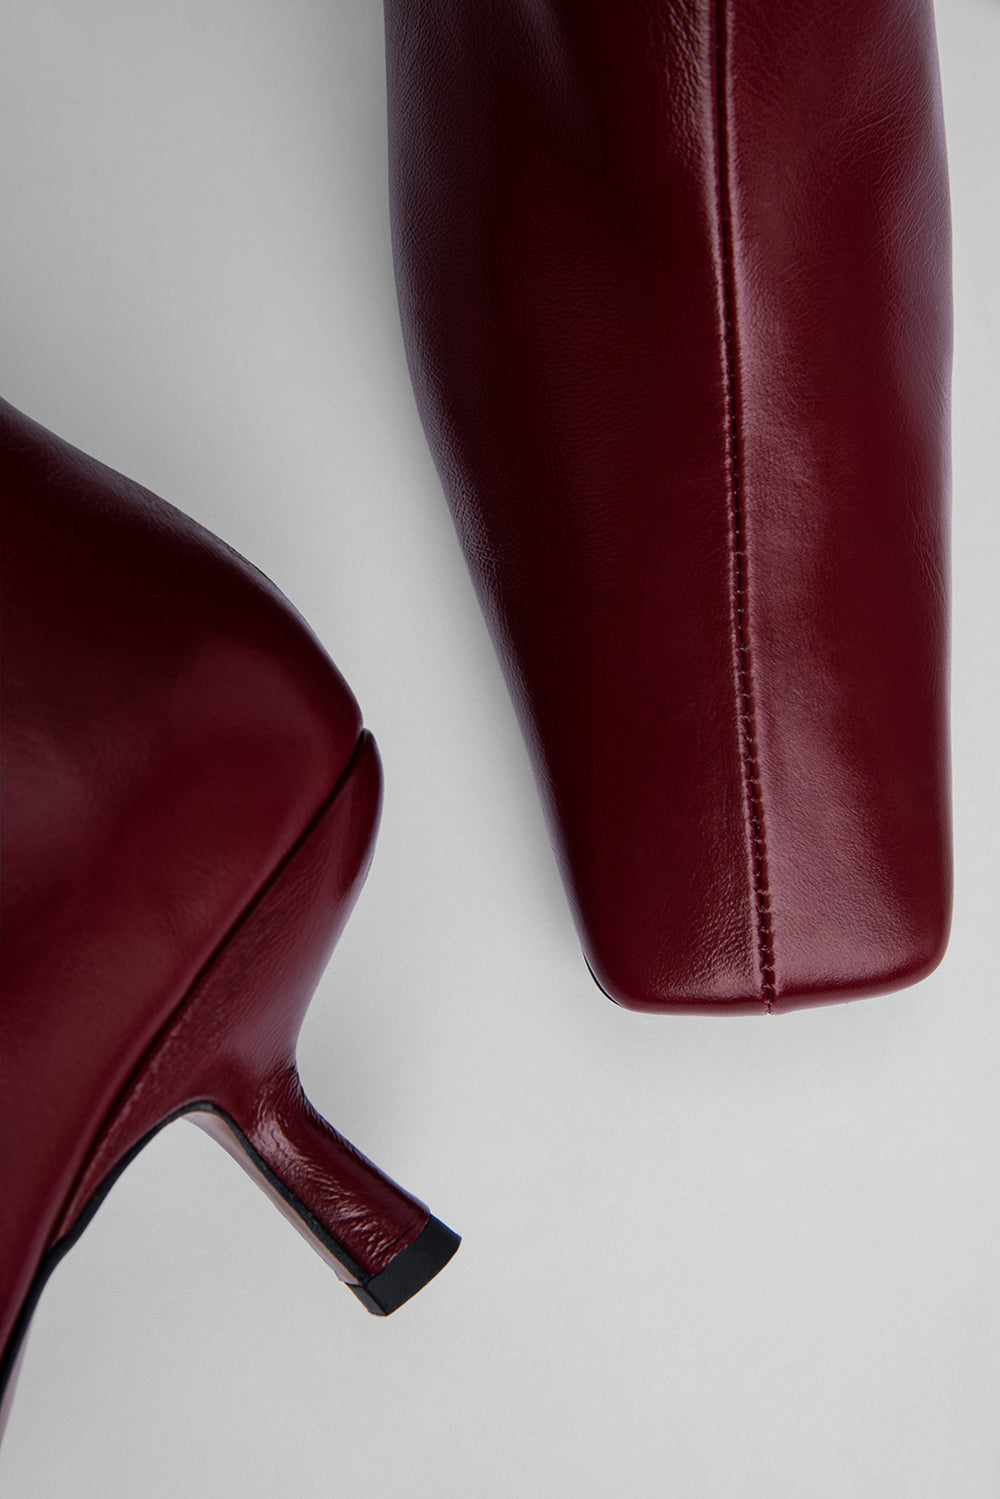 Lange Bordeaux Creased Leather